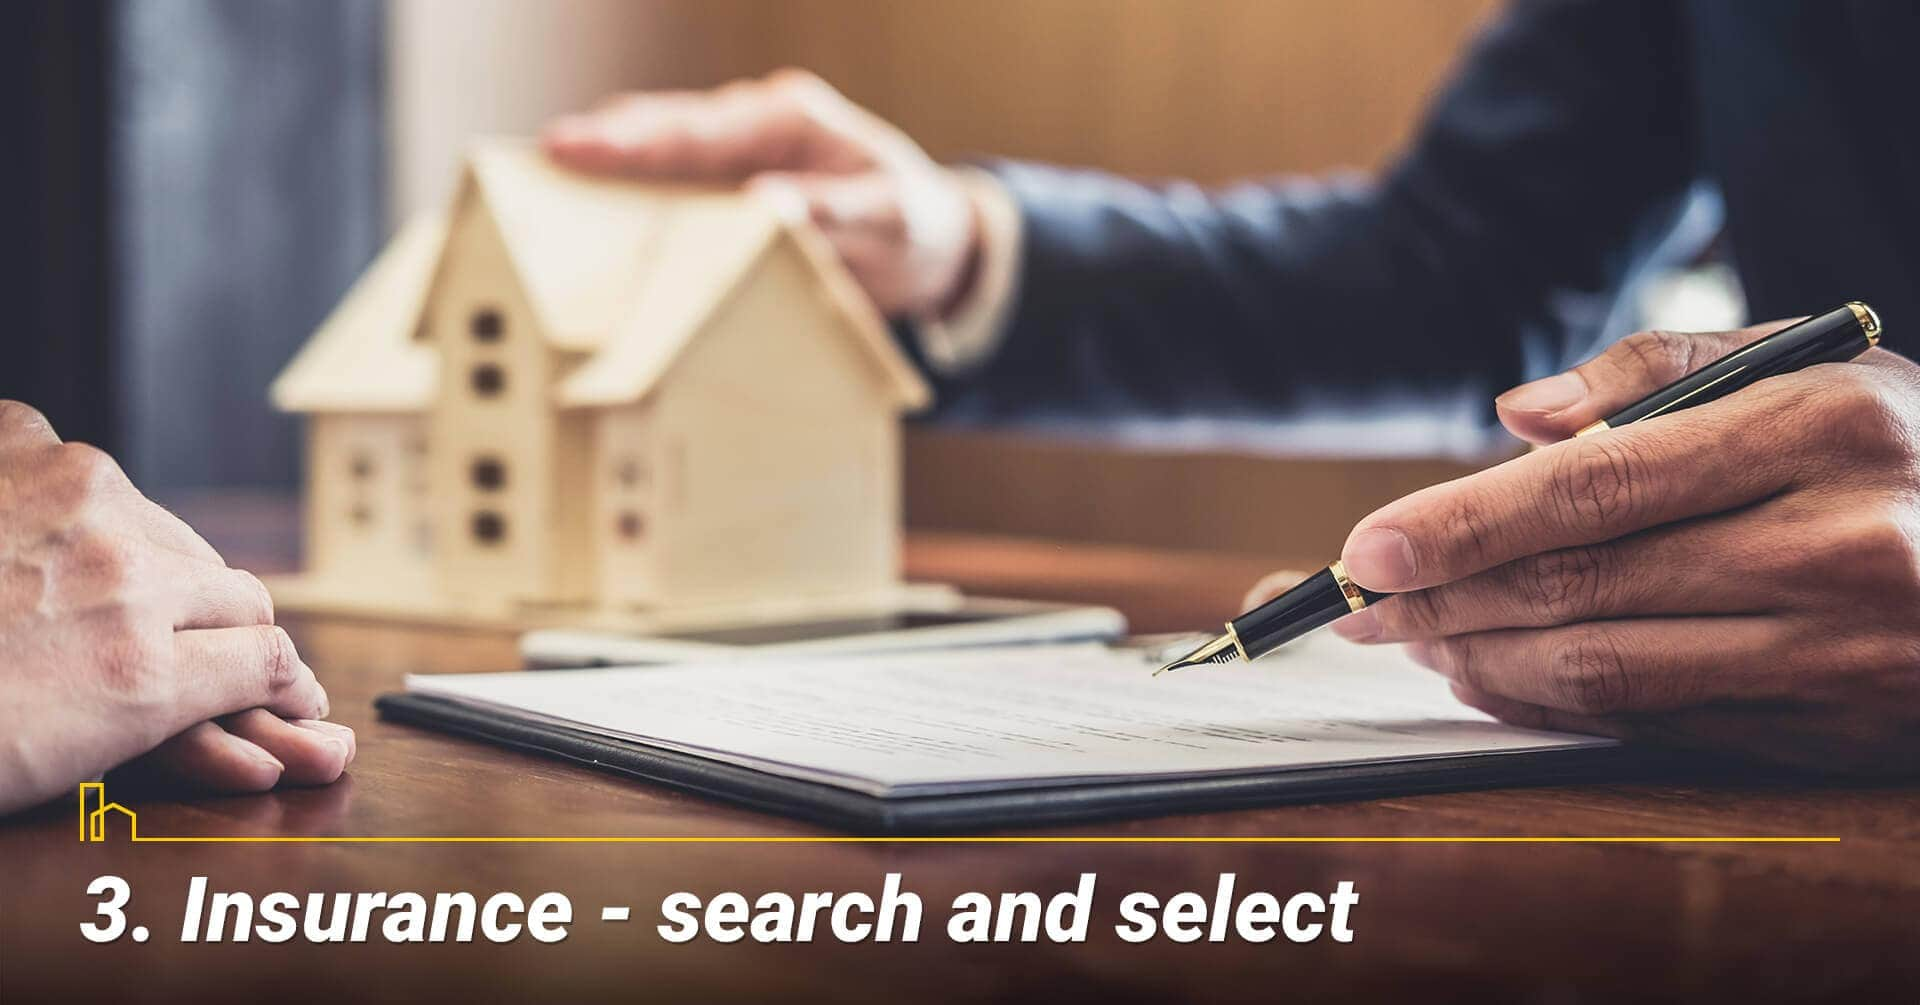 Insurance — search and select, select a good coverage for your rental property